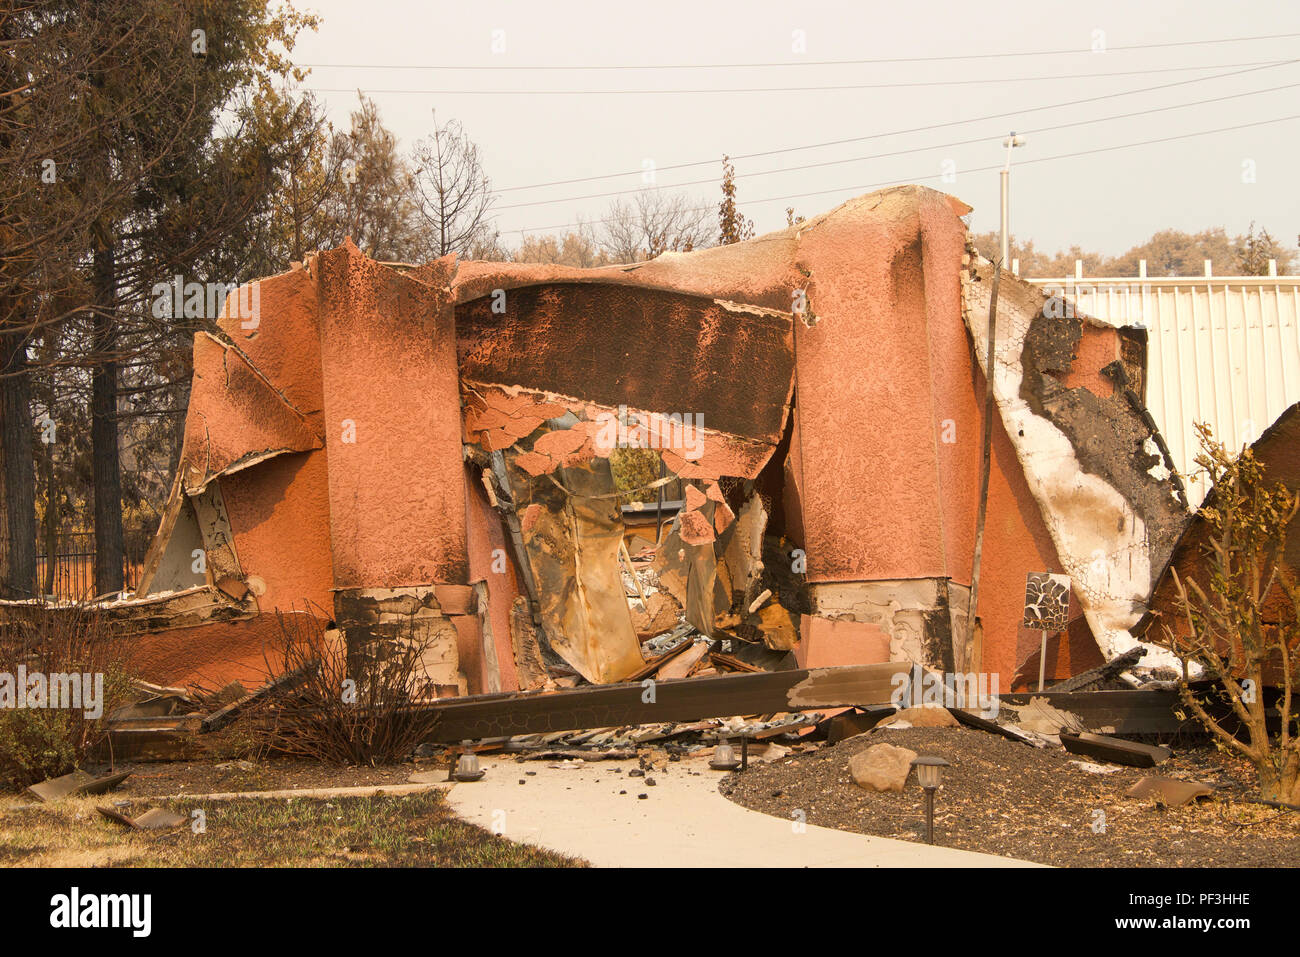 home severely burned with walls leaning and stucco hanging in the recent wild fire fire storm in Redding, California. Smoke and ash in the air as the  - Stock Image